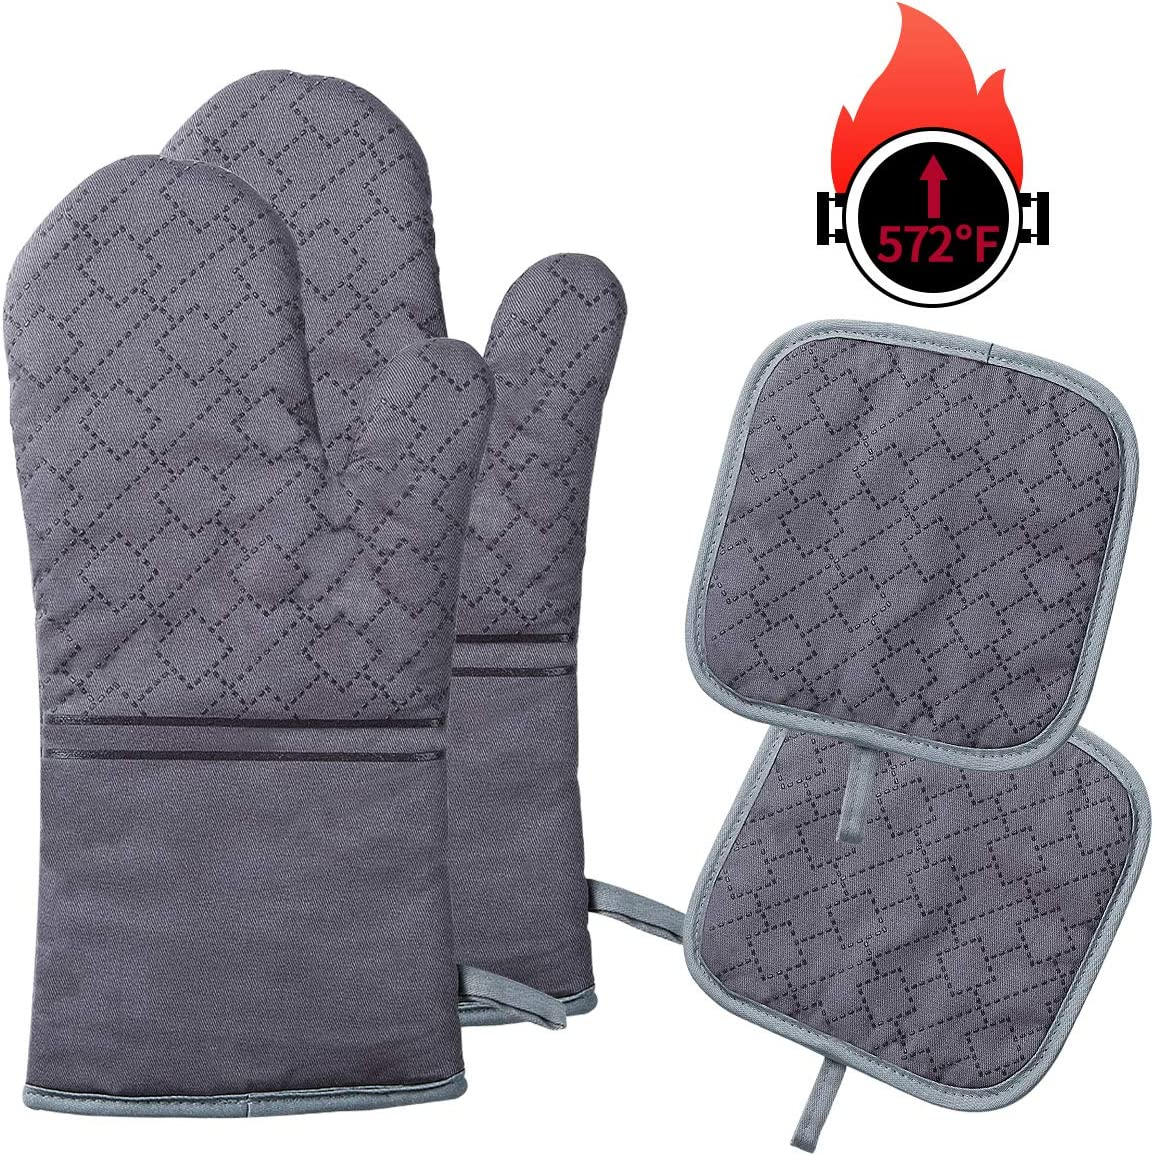 YOUTAI Oven Mitts and Pot Holders, 4PCS Oven Mitts Set, Heat Resistant up to 572 F/300°C Non-Slip Food Grade Kitchen Mitten Silicone Cooking Gloves for Kitchen, BBQ Cooking Baking Grilling